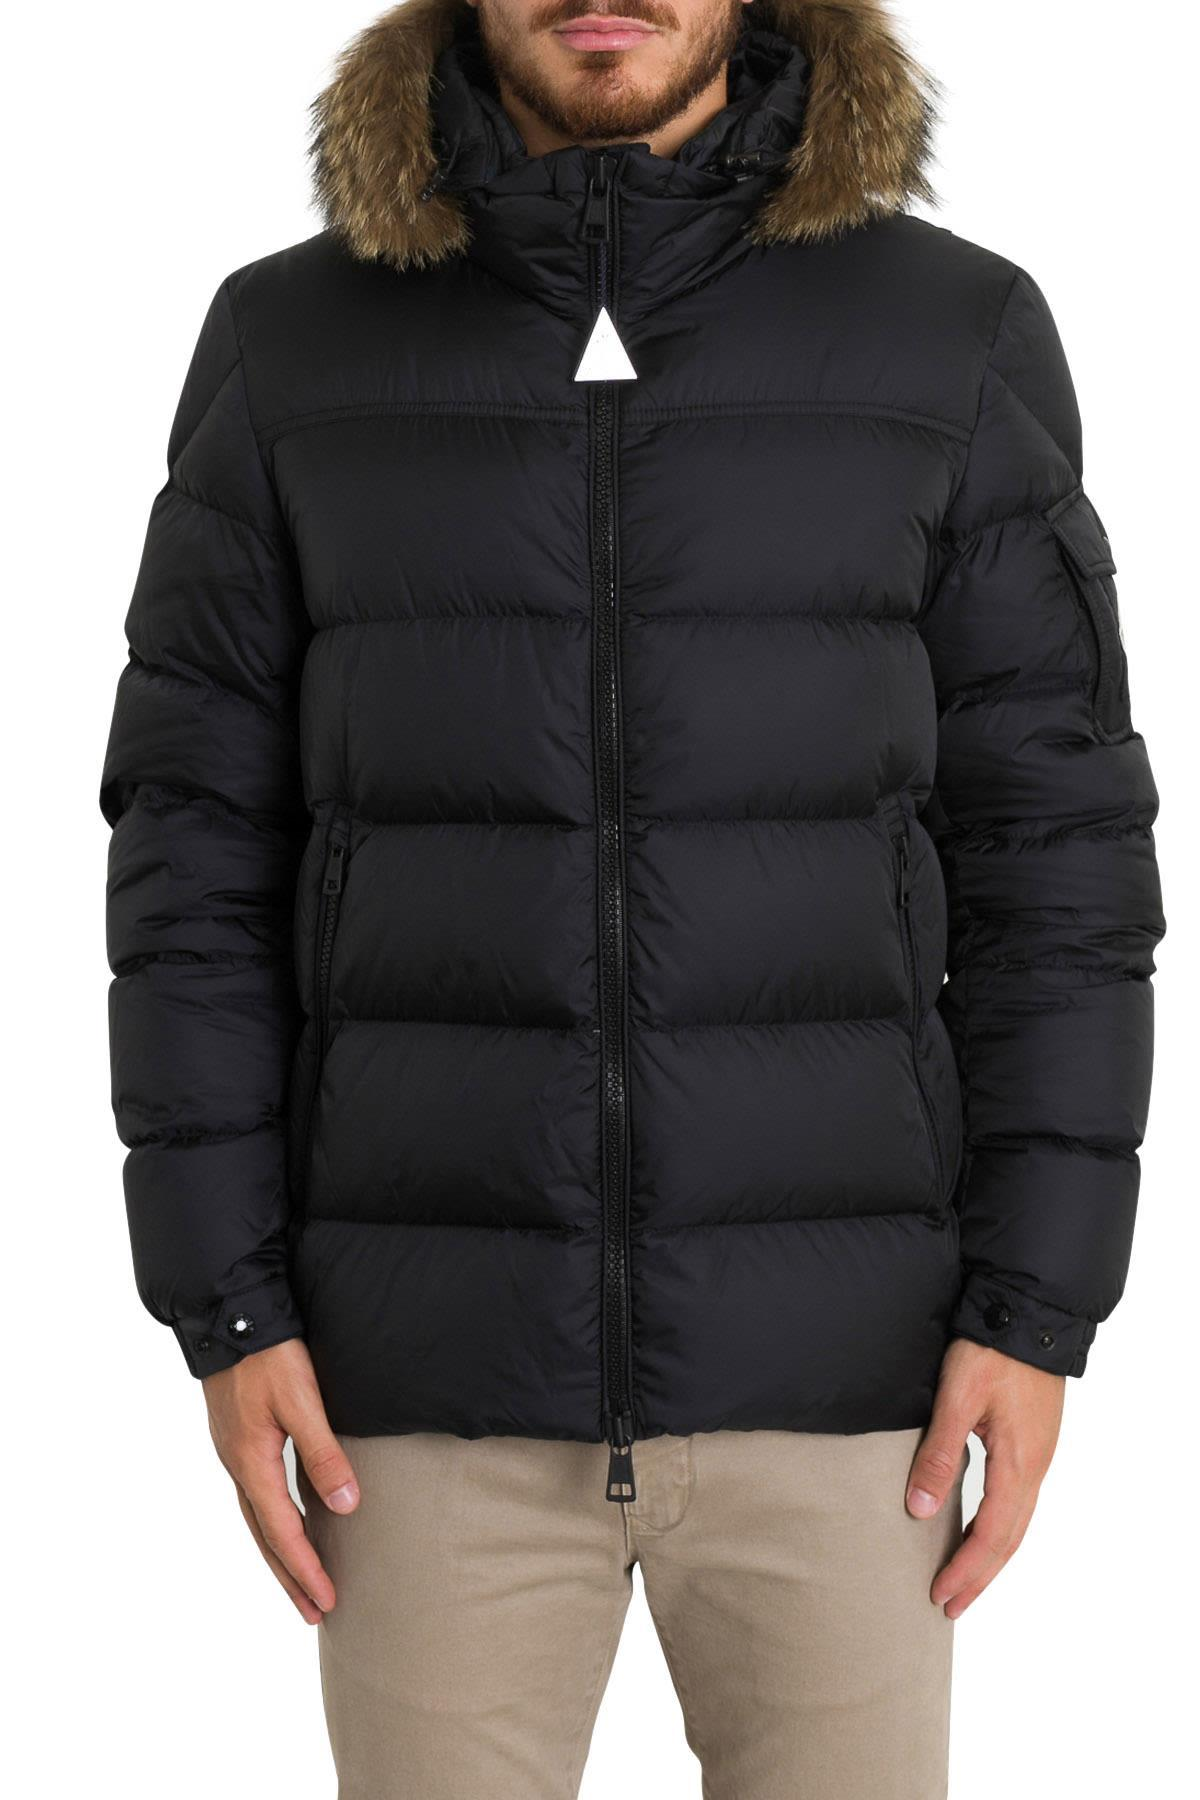 80de2262b2b5 Moncler Marque Quilted-Down Jacket In Black